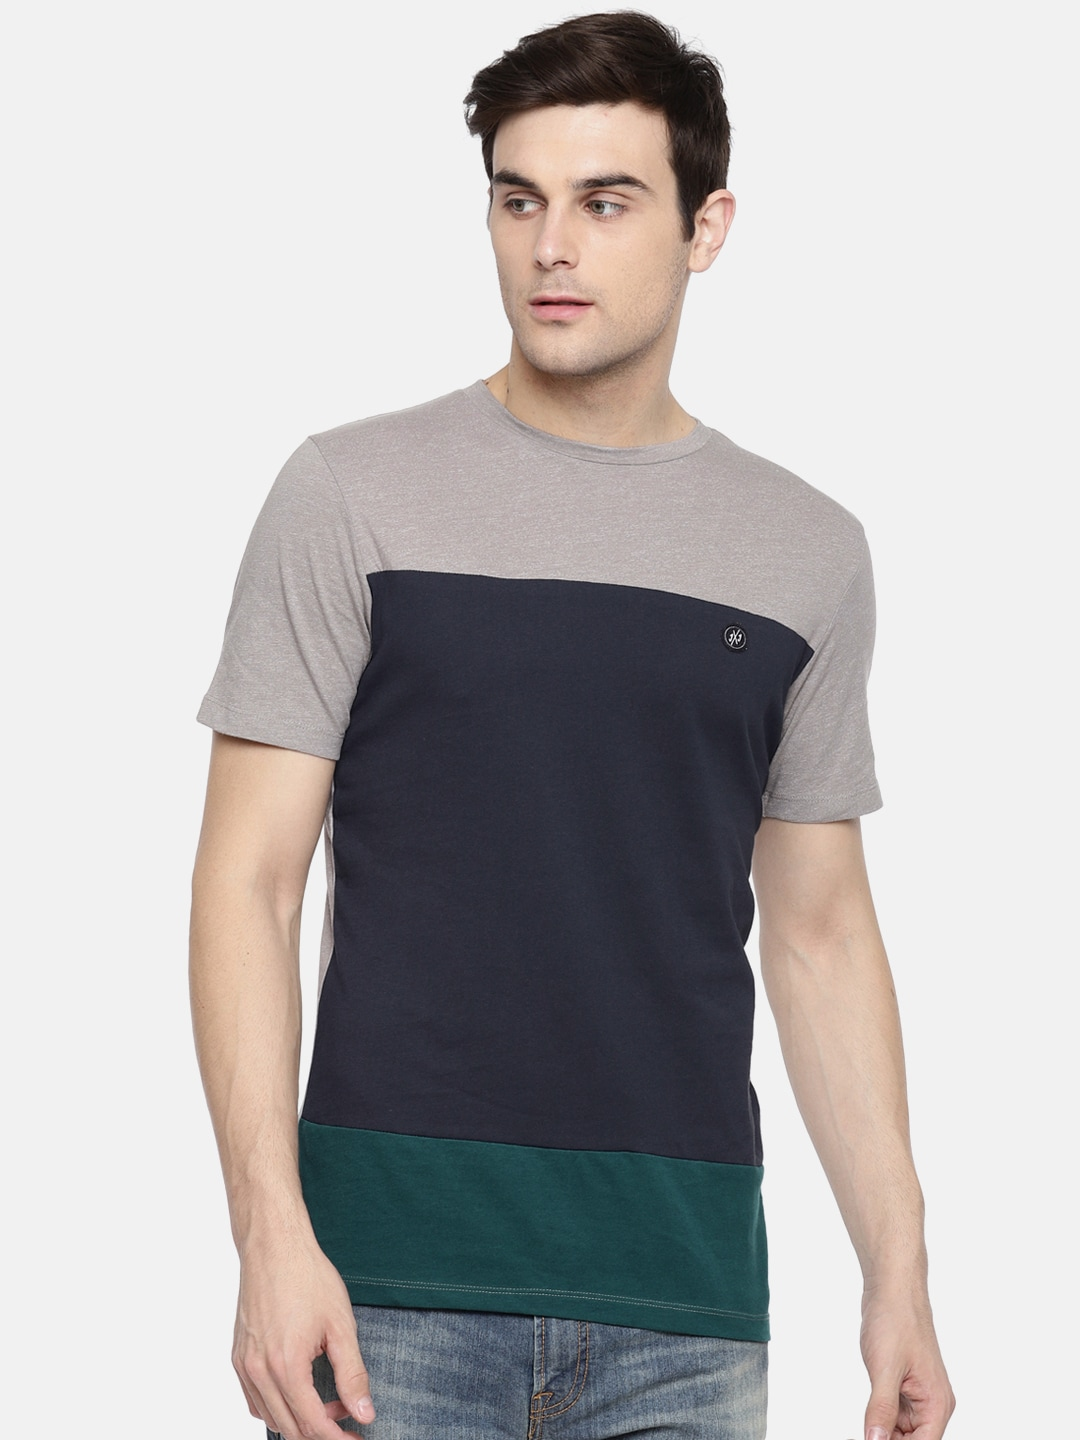 452bb3c6 Men T-shirts - Buy T-shirt for Men Online in India | Myntra